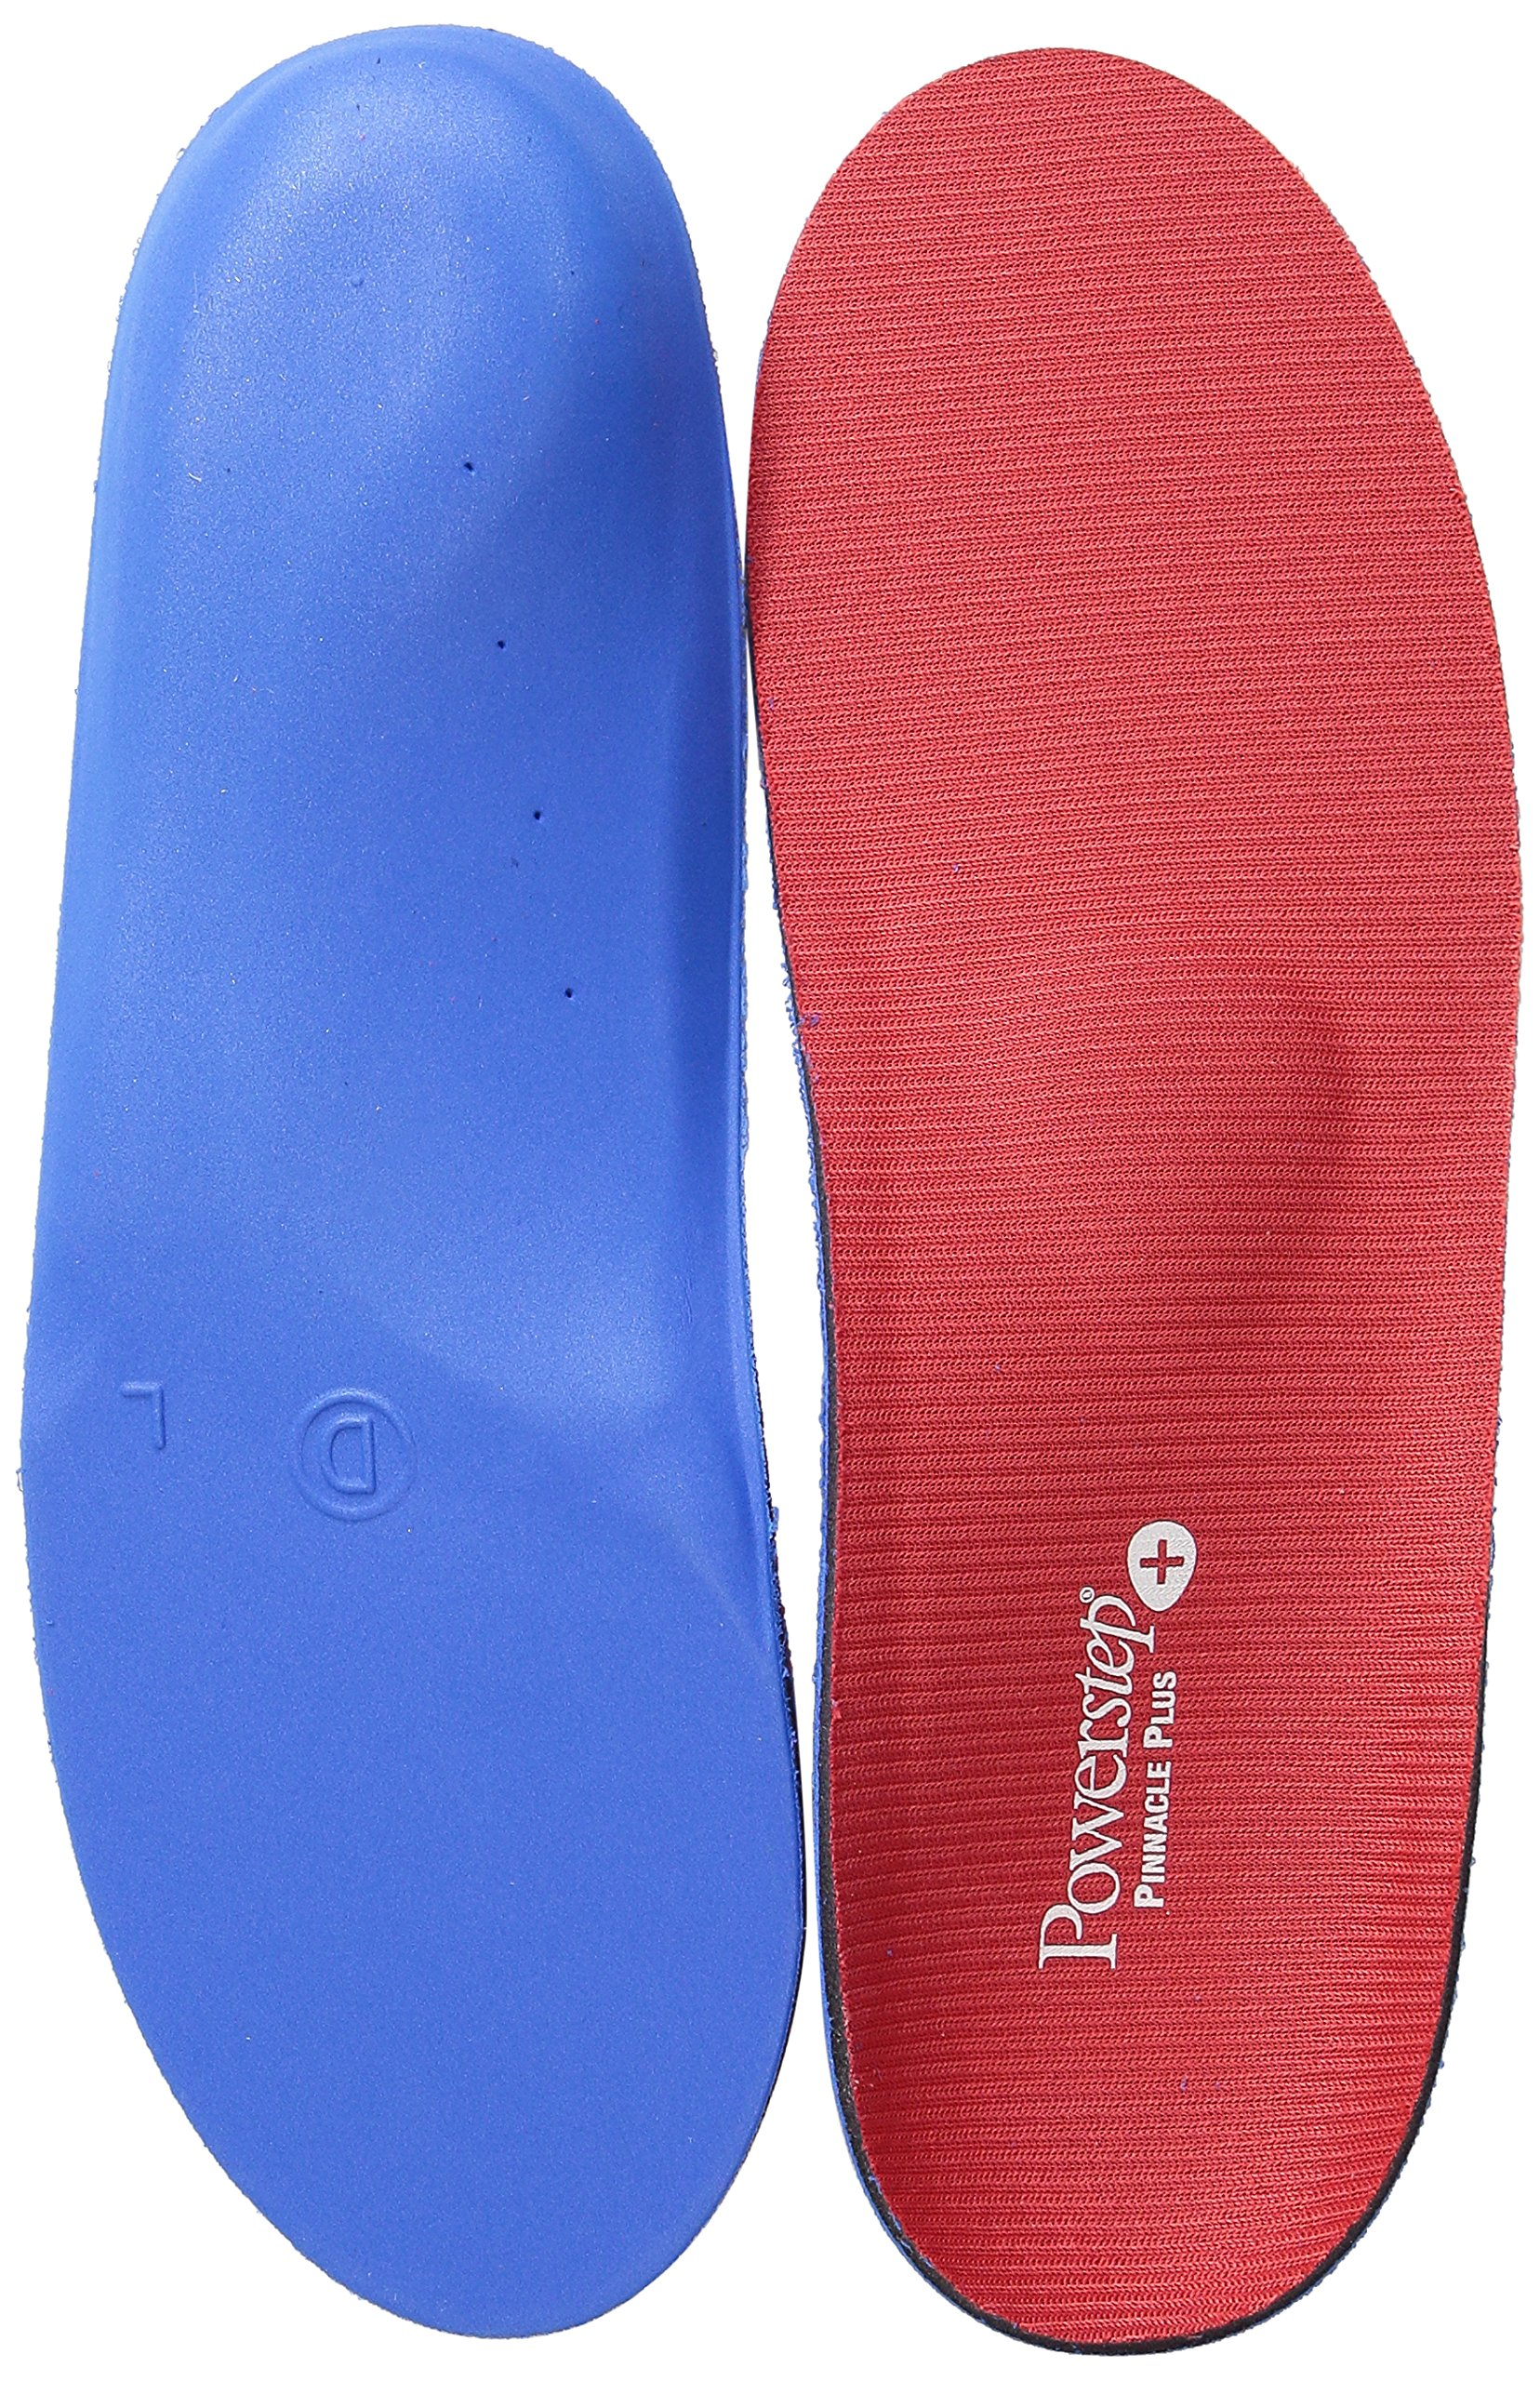 Powerstep Pinnacle Plus Full Length Orthotic Shoe Inserts - Built-In Metatarsal Support